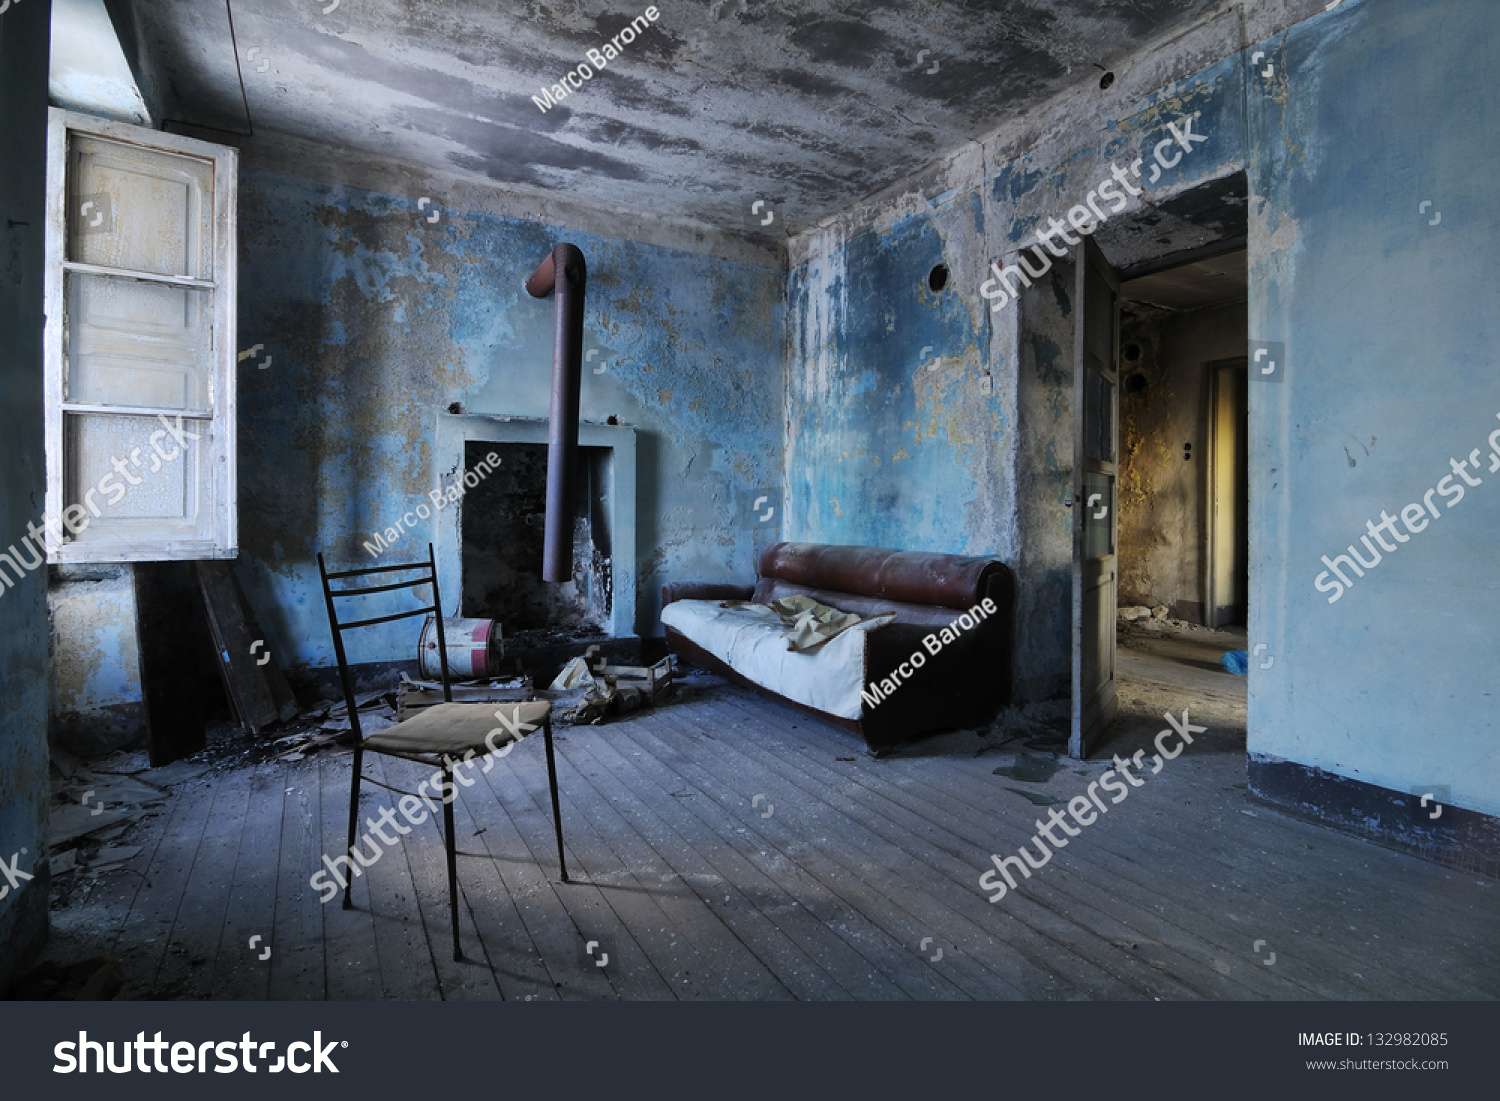 Old Abandoned Room Stock Photo 132982085 Shutterstock